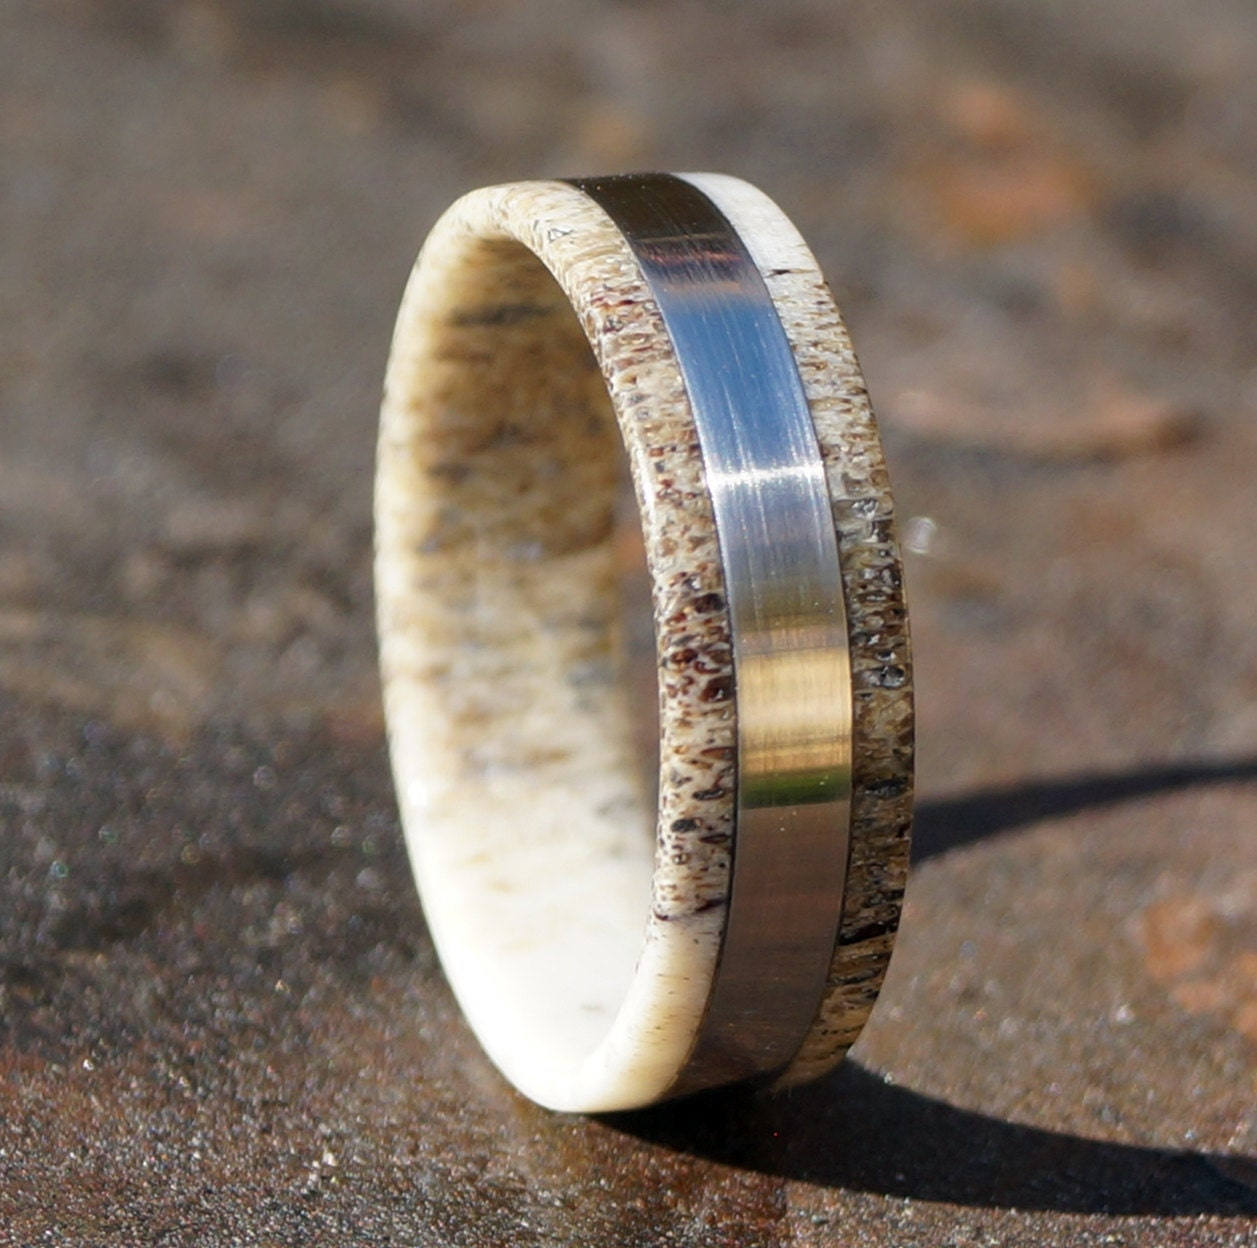 deer antler ring stainless steel ring wedding ring - Deer Antler Wedding Rings